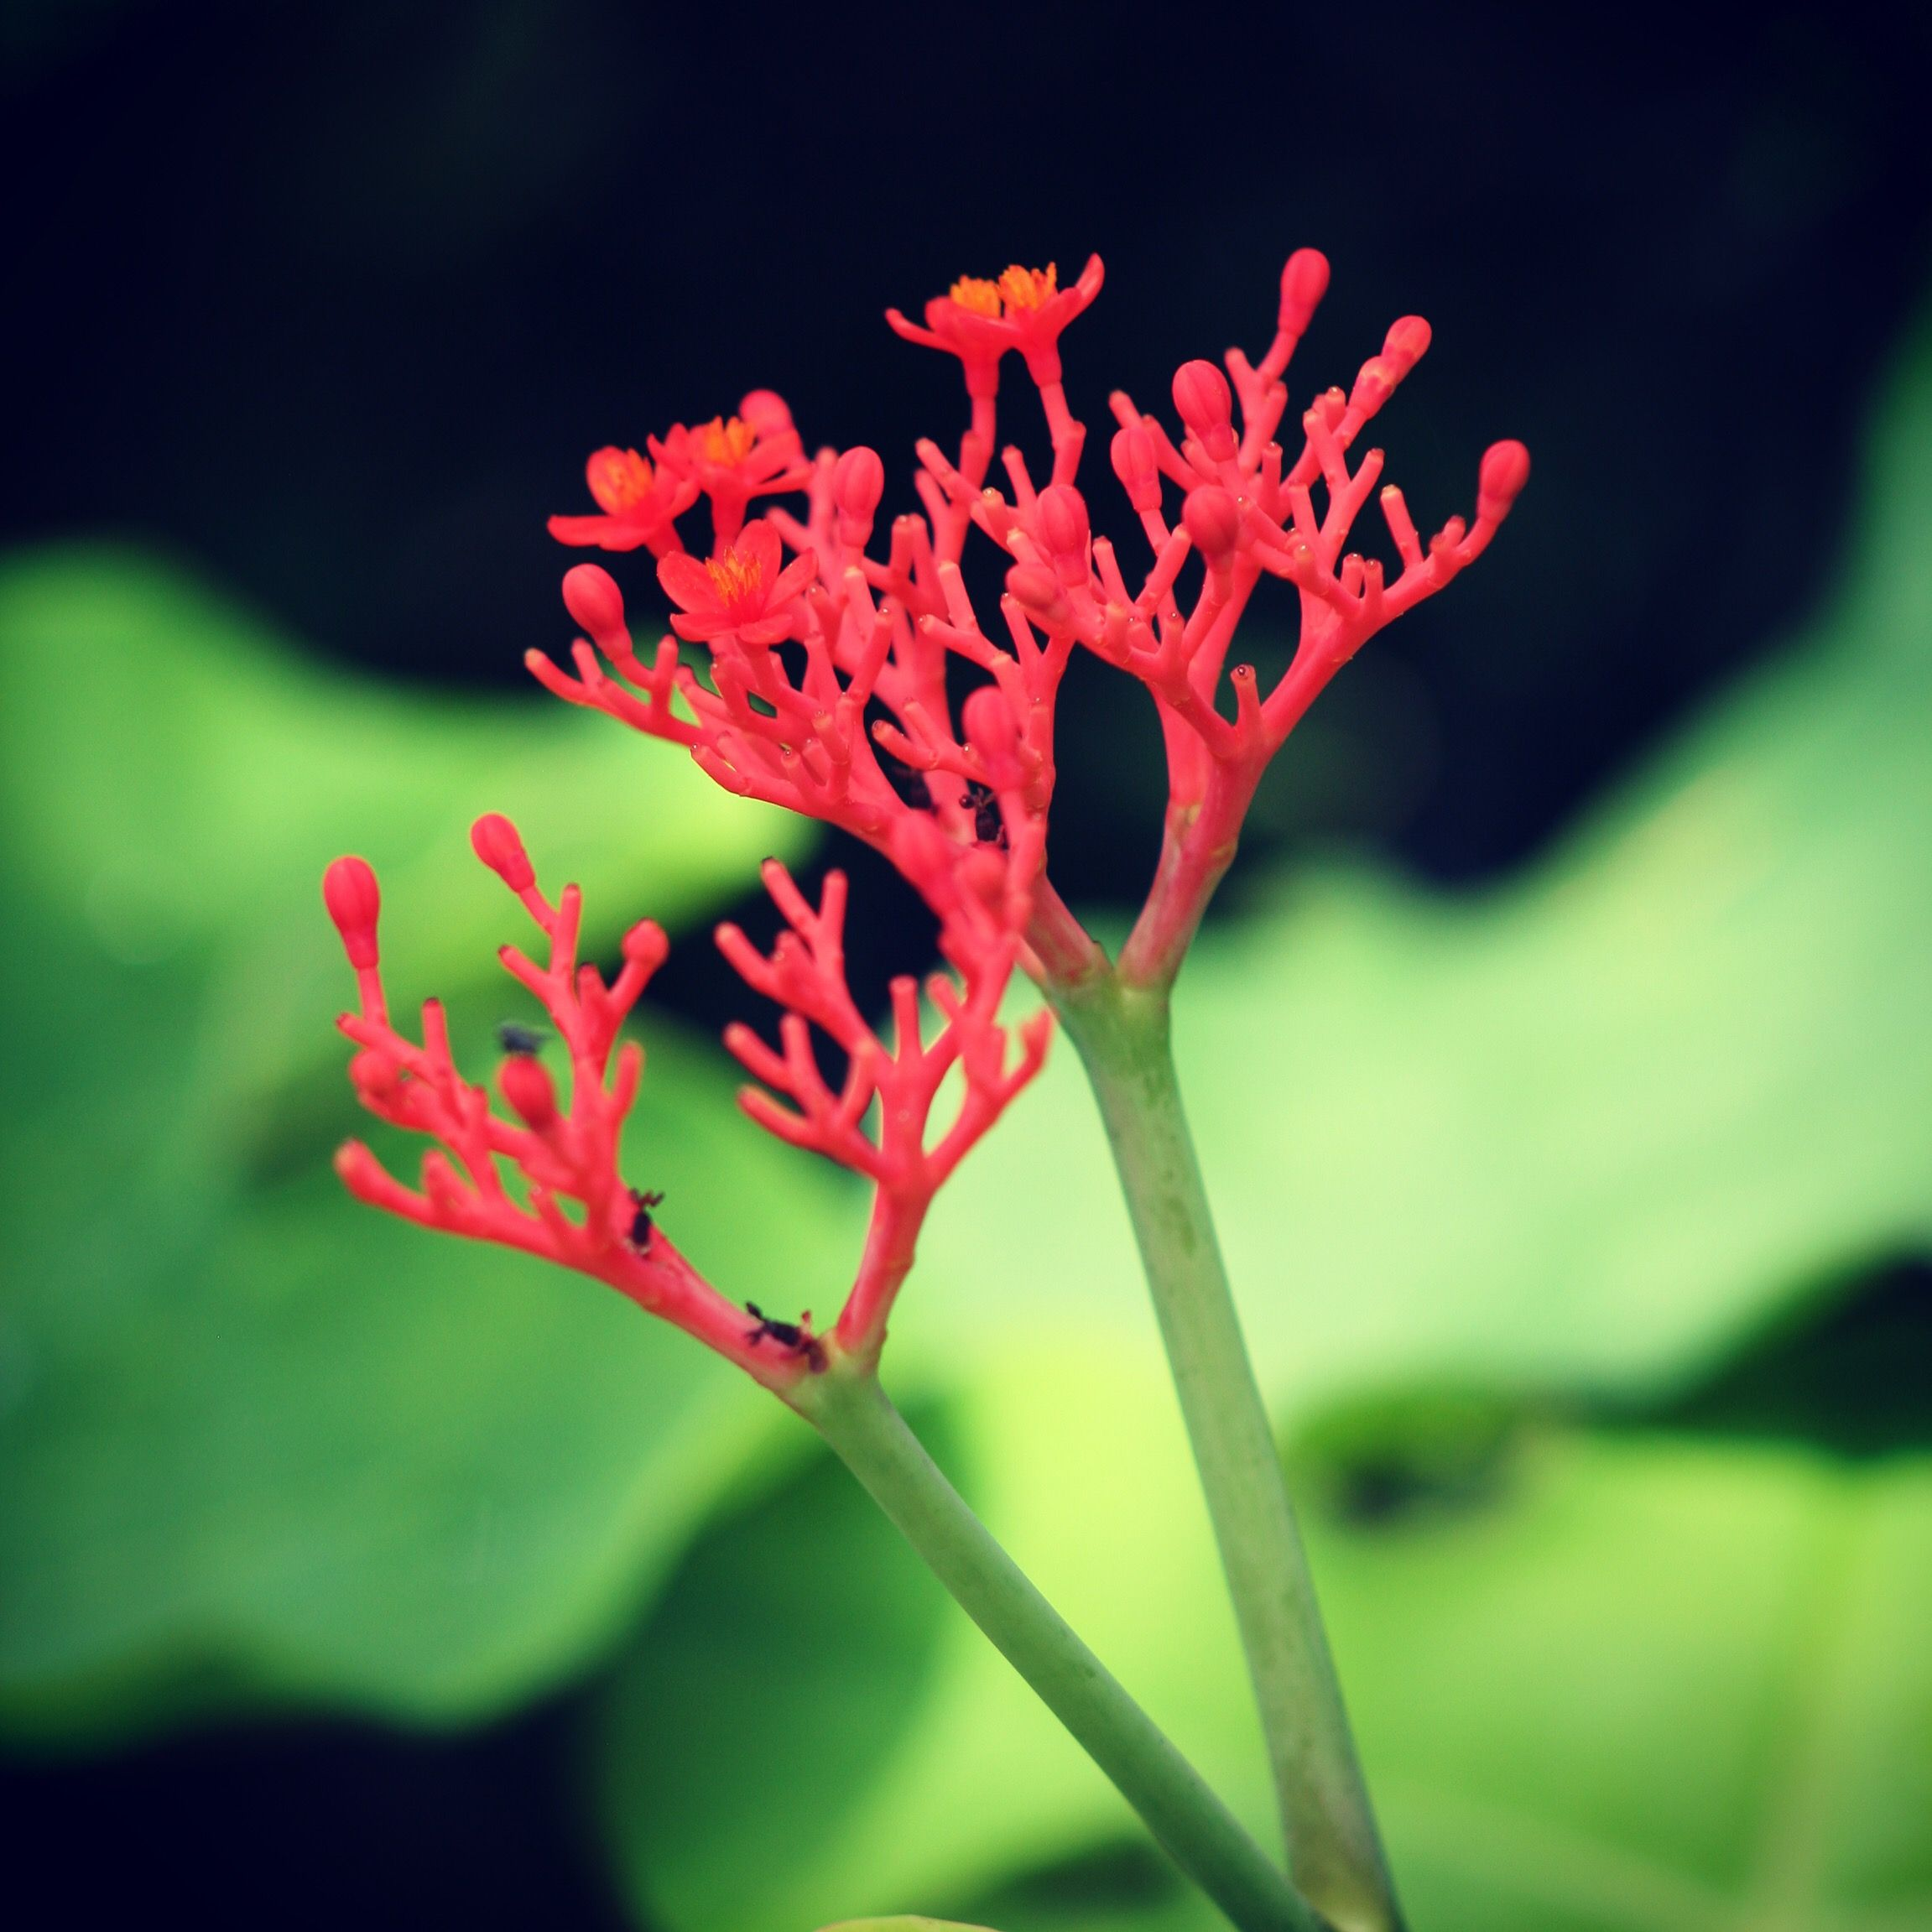 This amazing coral looking flower come from the BUDDHA